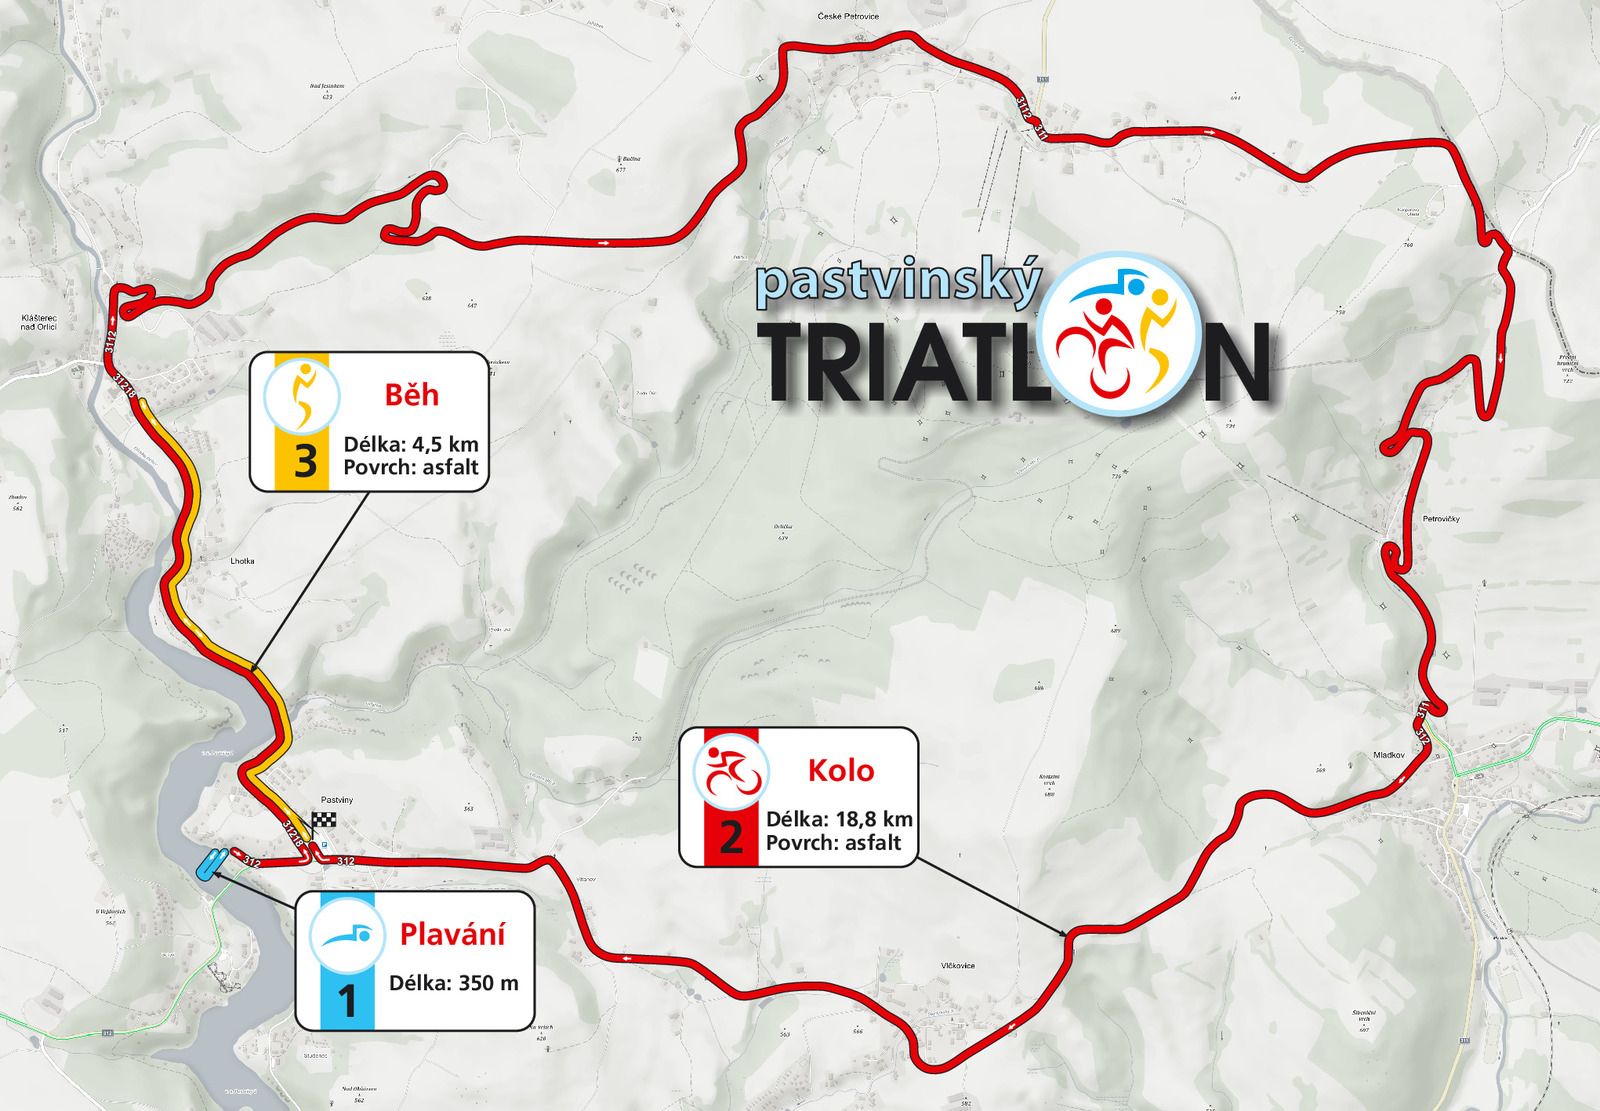 triatlon-mapa_new3_1.jpg